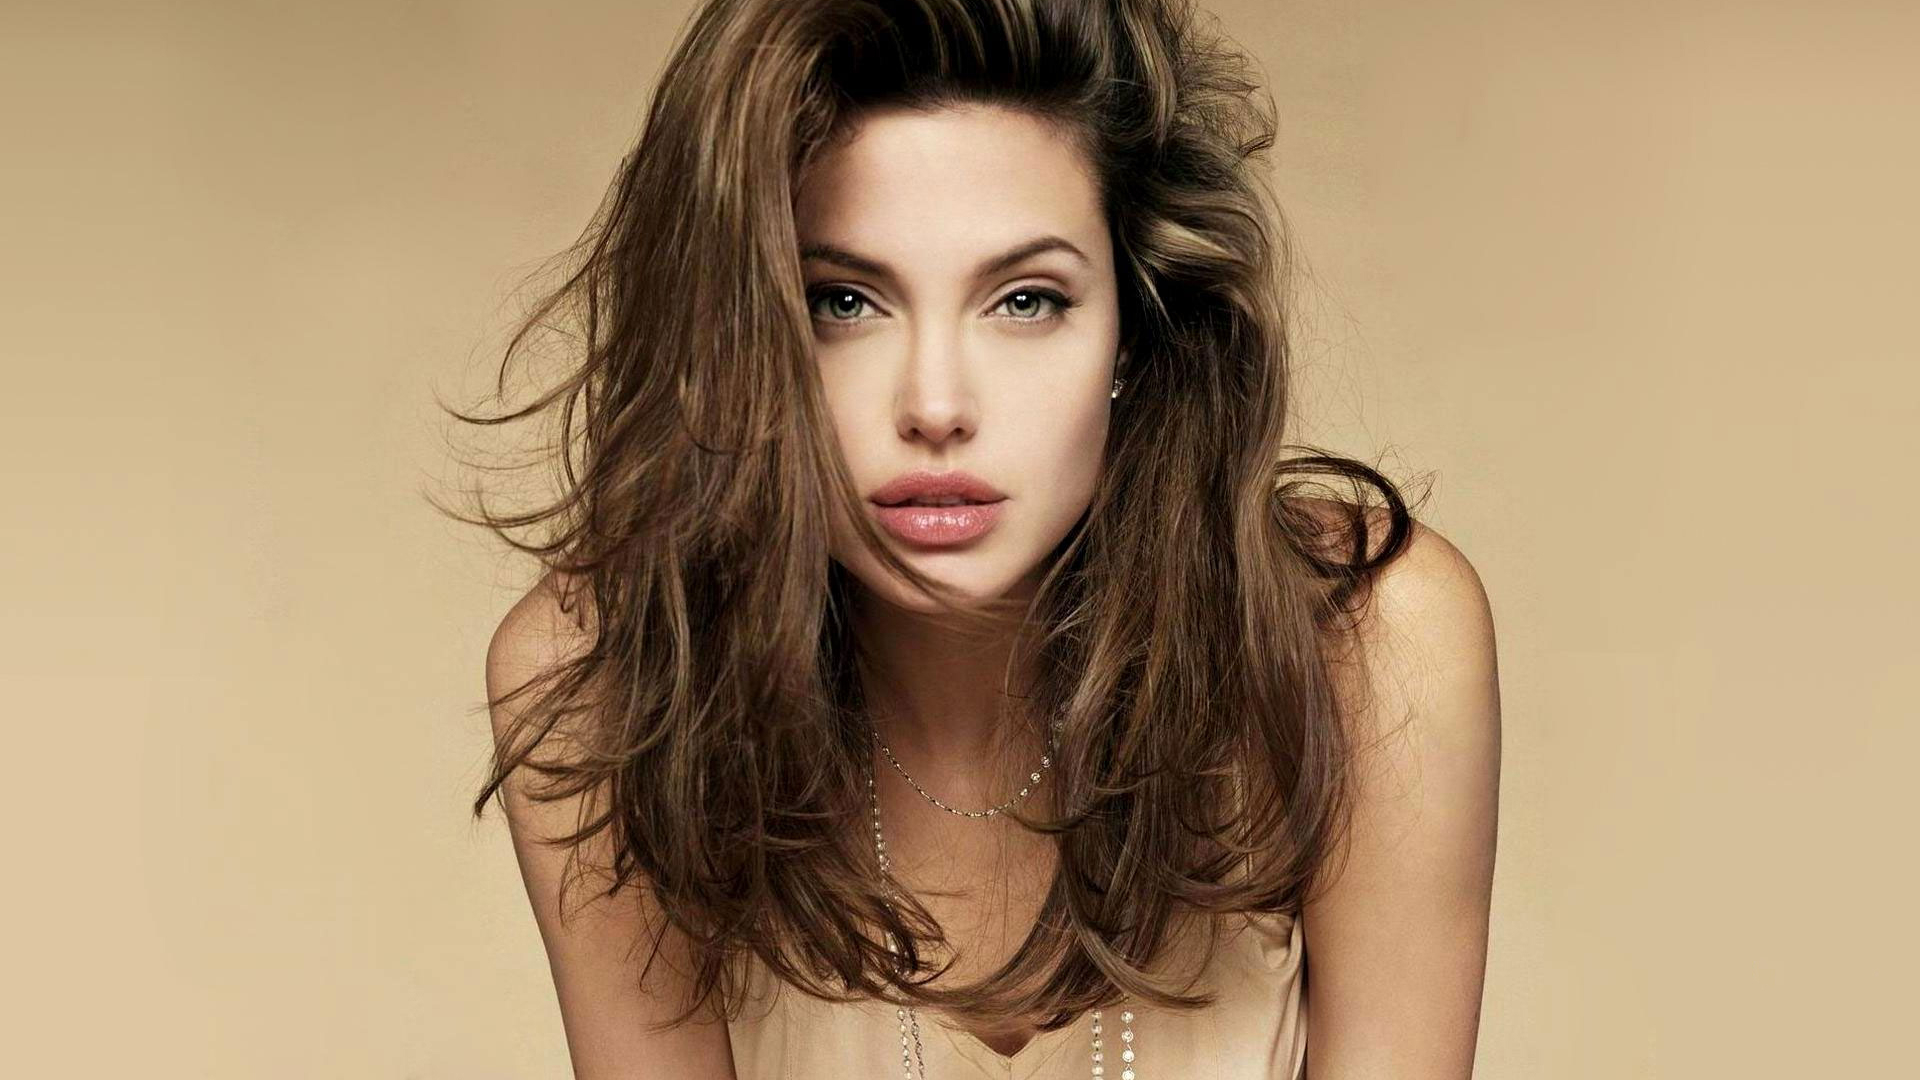 Actress hot hollywood angelina jolie young pictures